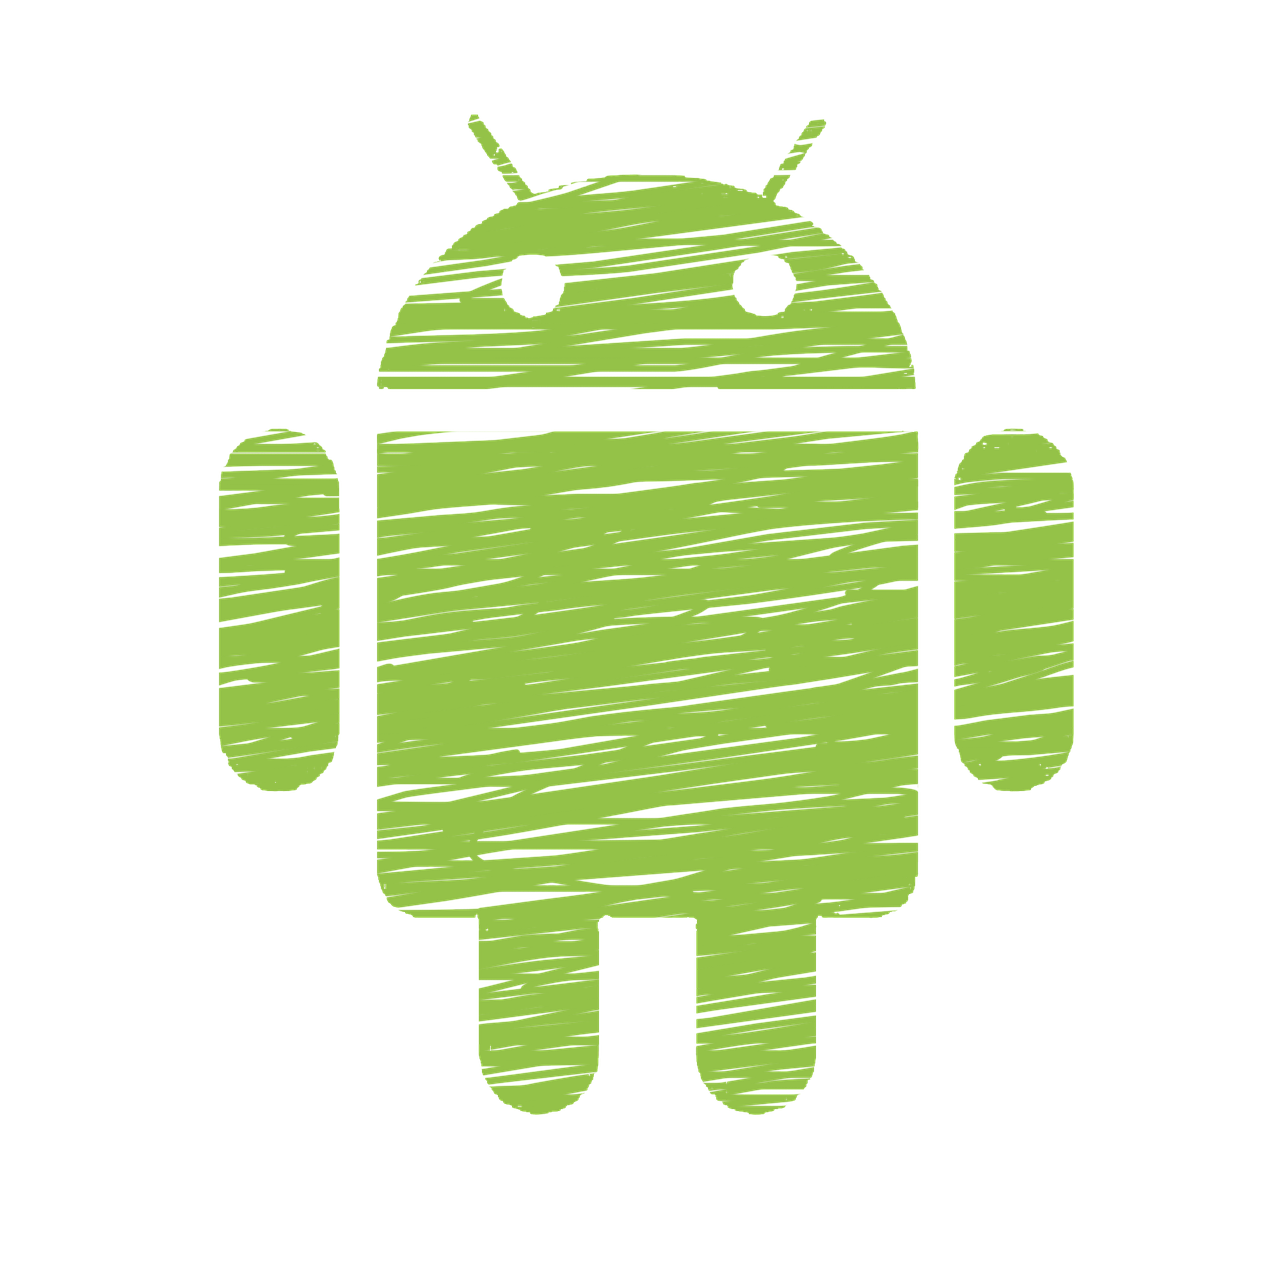 About That Android App…